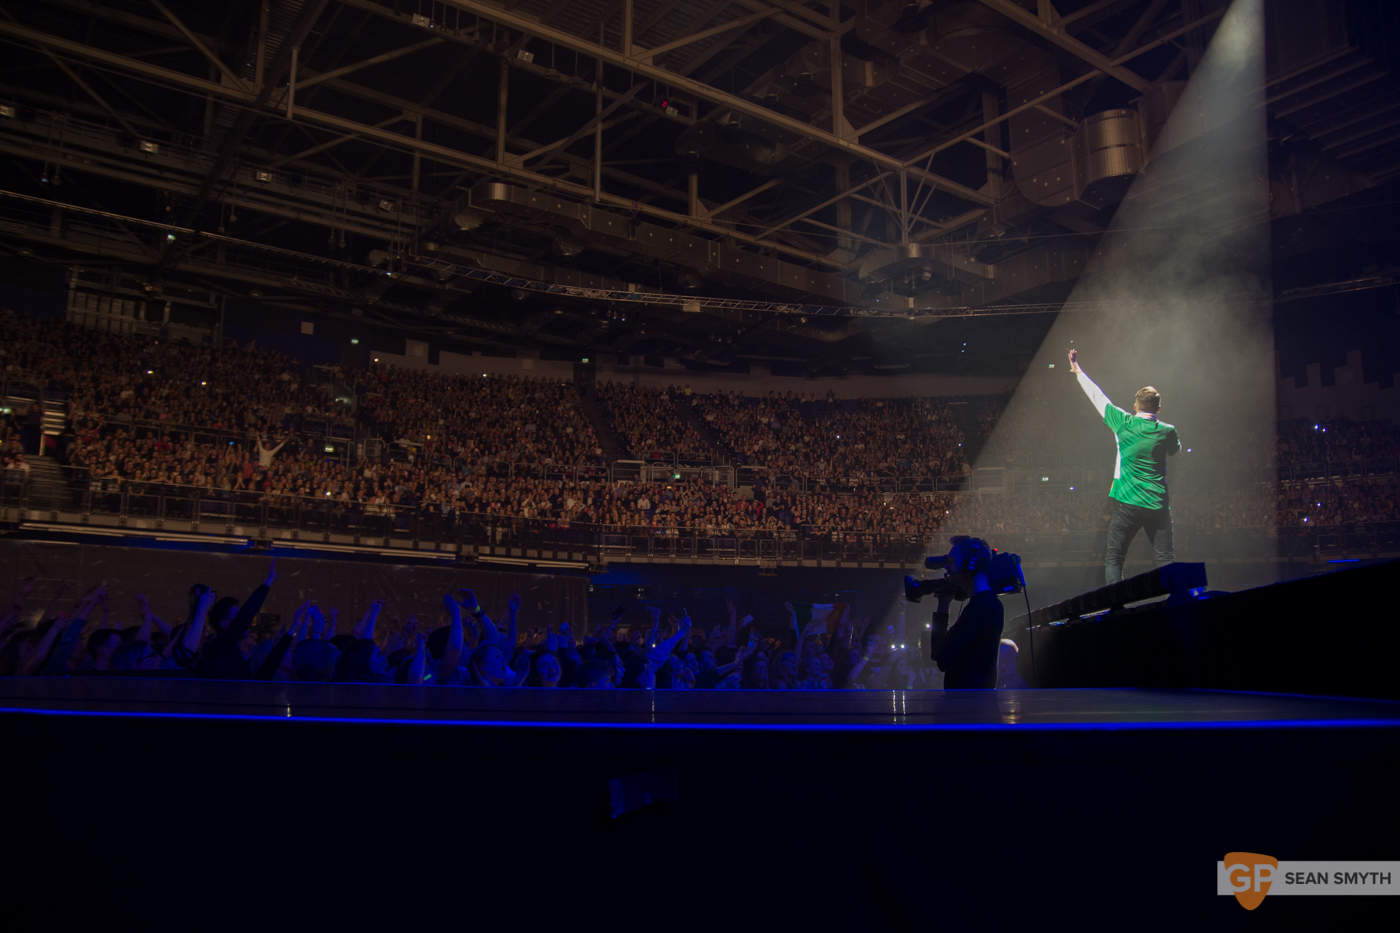 Macklemore & Ryan Lewis at 3Arena by Sean Smyth (15-4-16) (11 of 23)